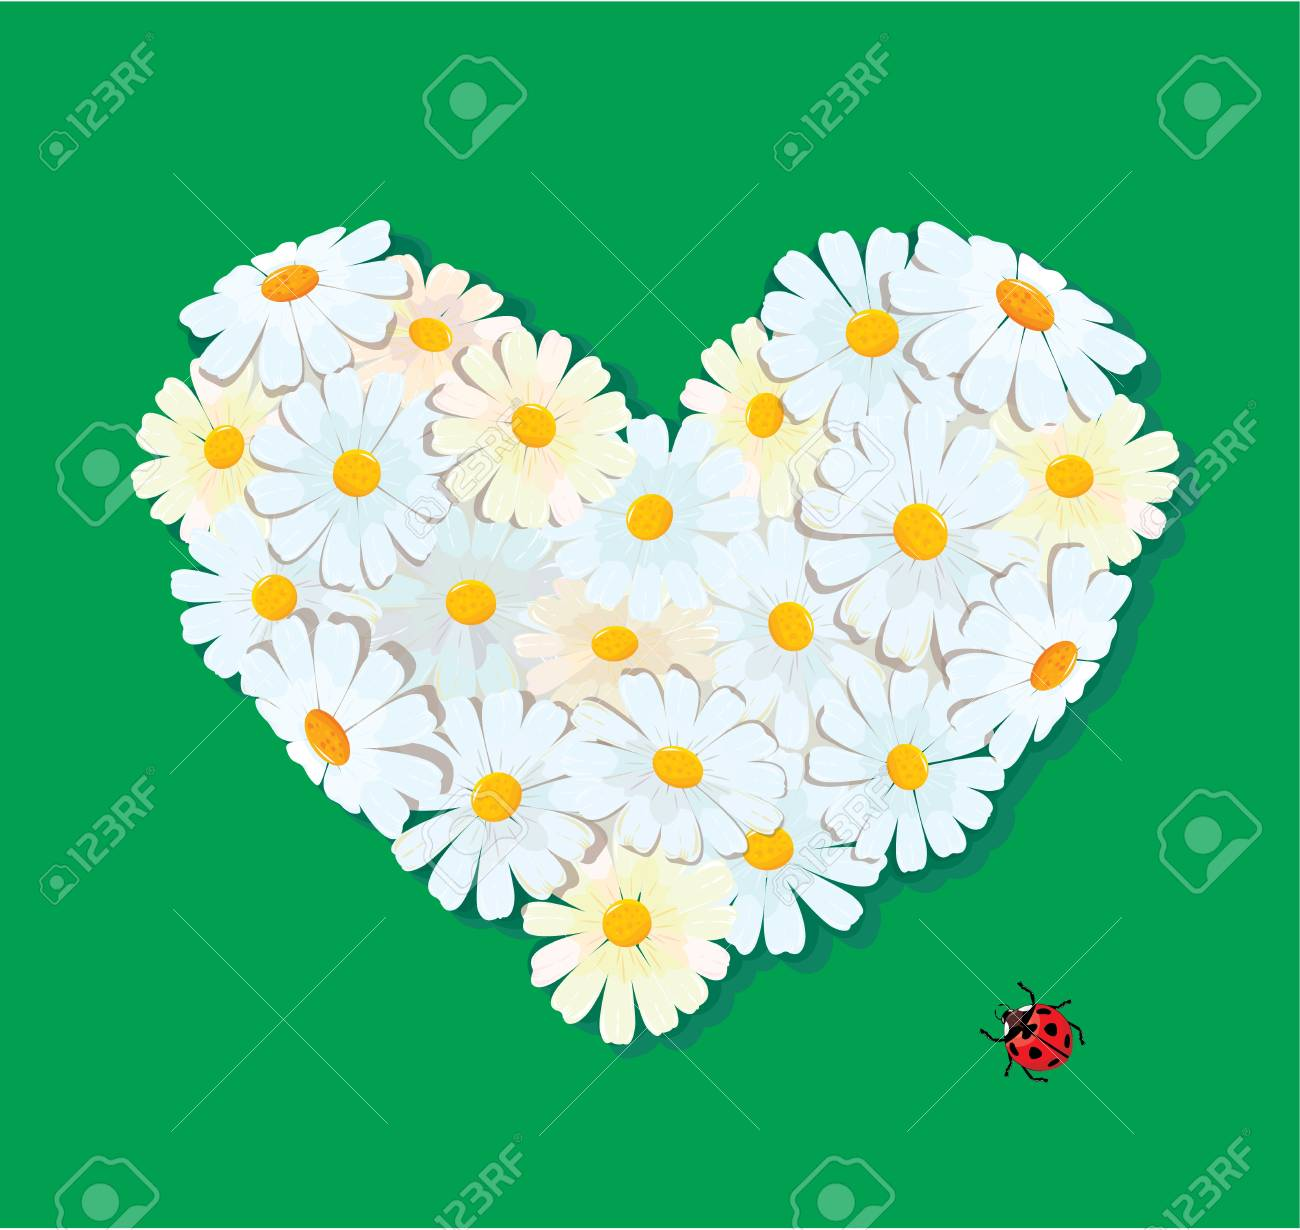 Heart is made of daisies on a green background. Valentines day card. Stock Vector - 16380581